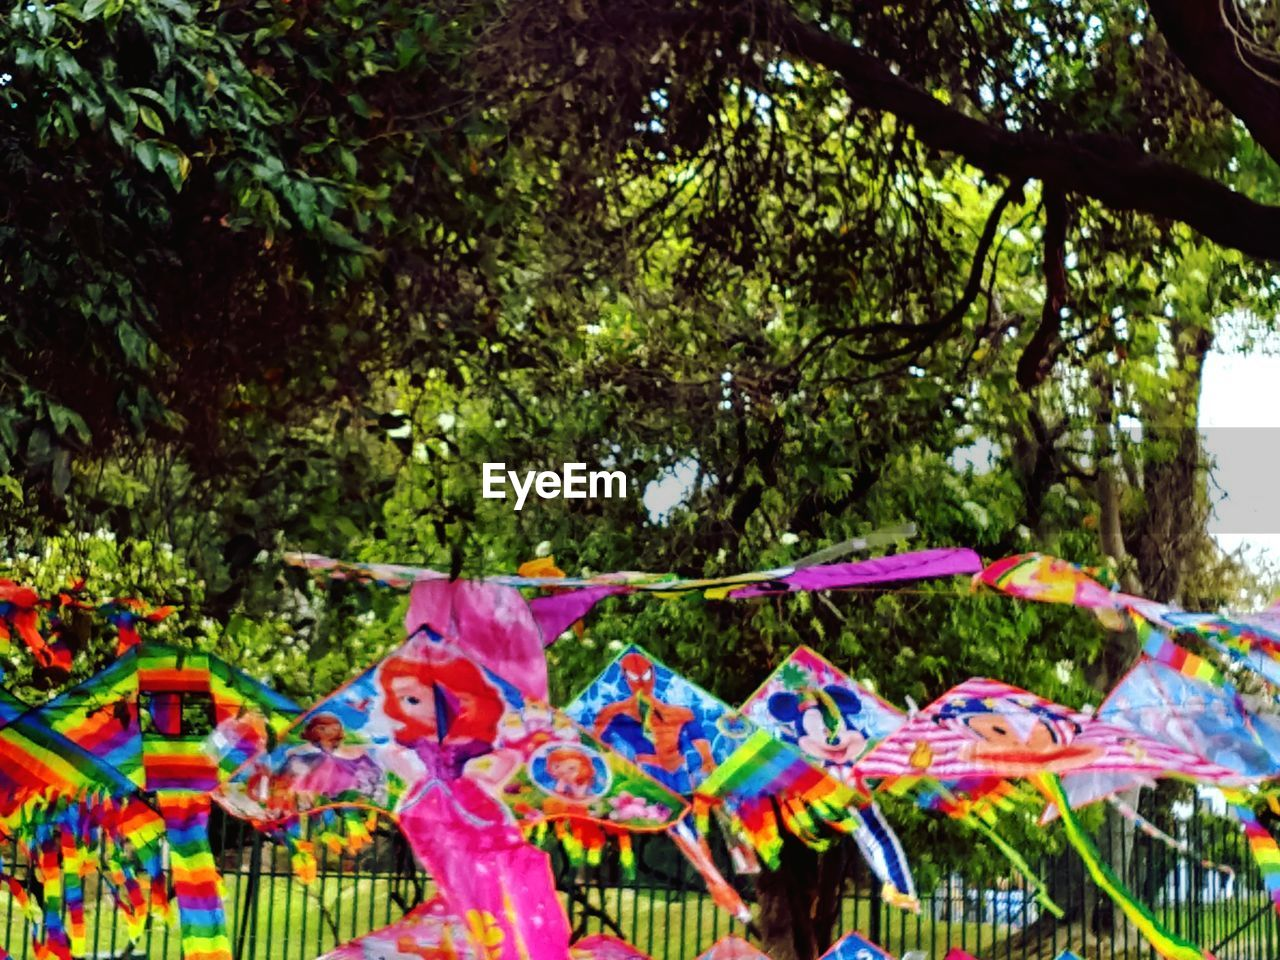 tree, plant, multi colored, nature, hanging, low angle view, day, no people, outdoors, decoration, growth, branch, celebration, fun, creativity, focus on foreground, art and craft, sunlight, event, park - man made space